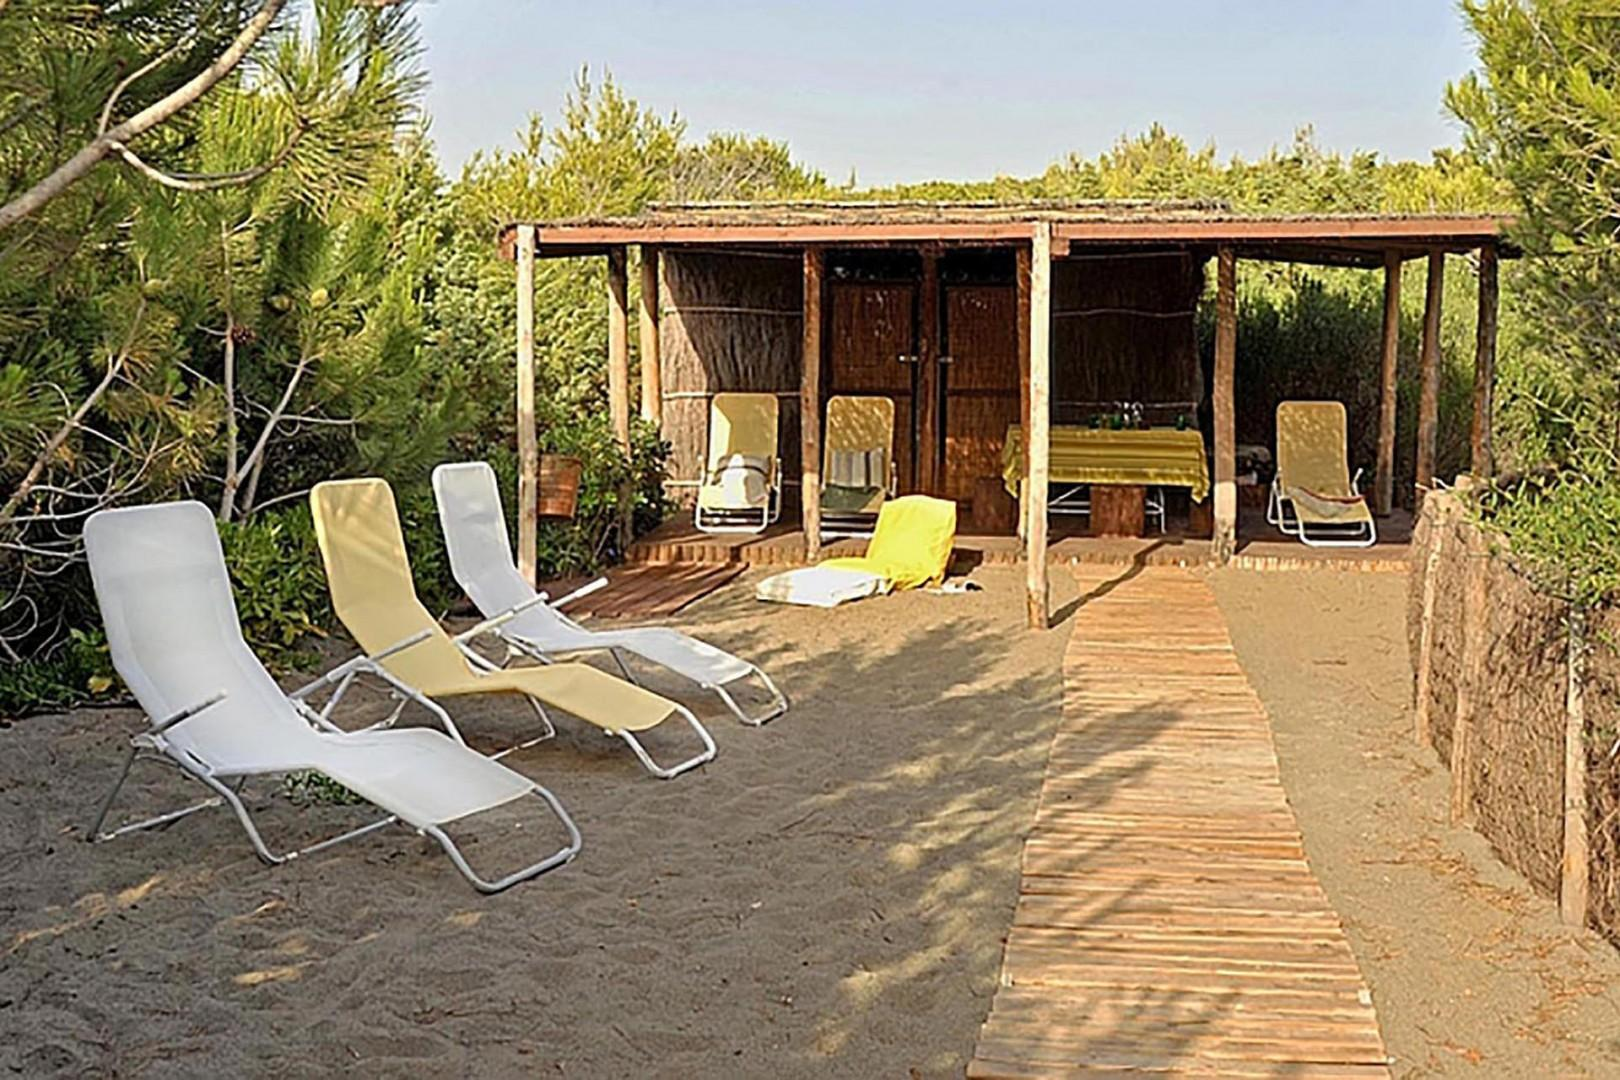 Private cabana with table, chairs, lounge chairs and a shower.